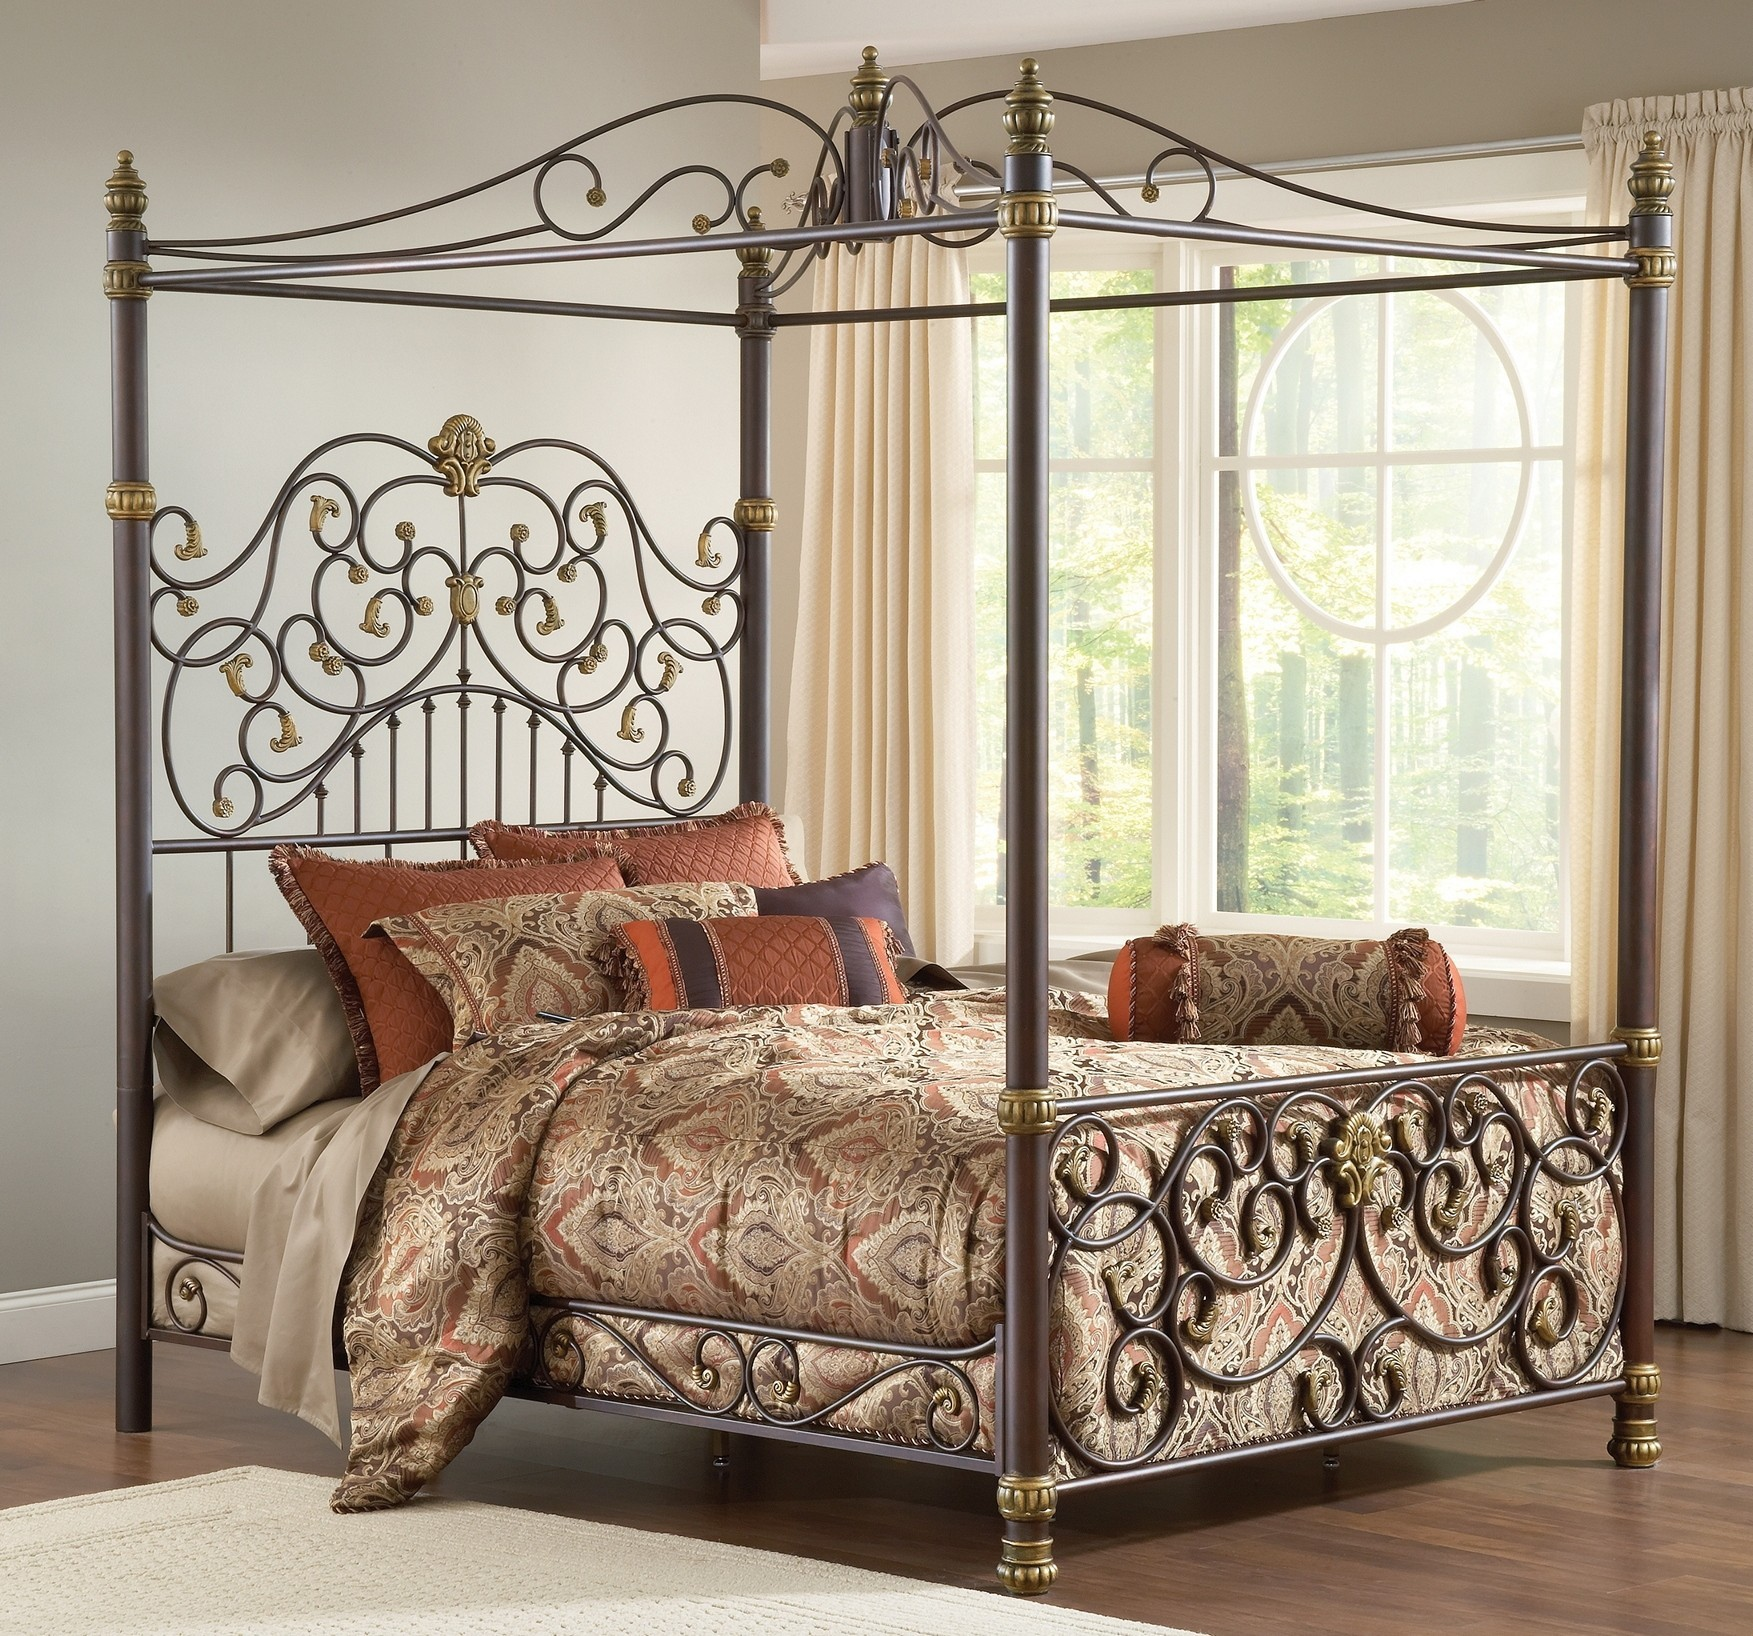 Elegant iron canopy bed frame homesfeed for Elegant canopy bedroom sets